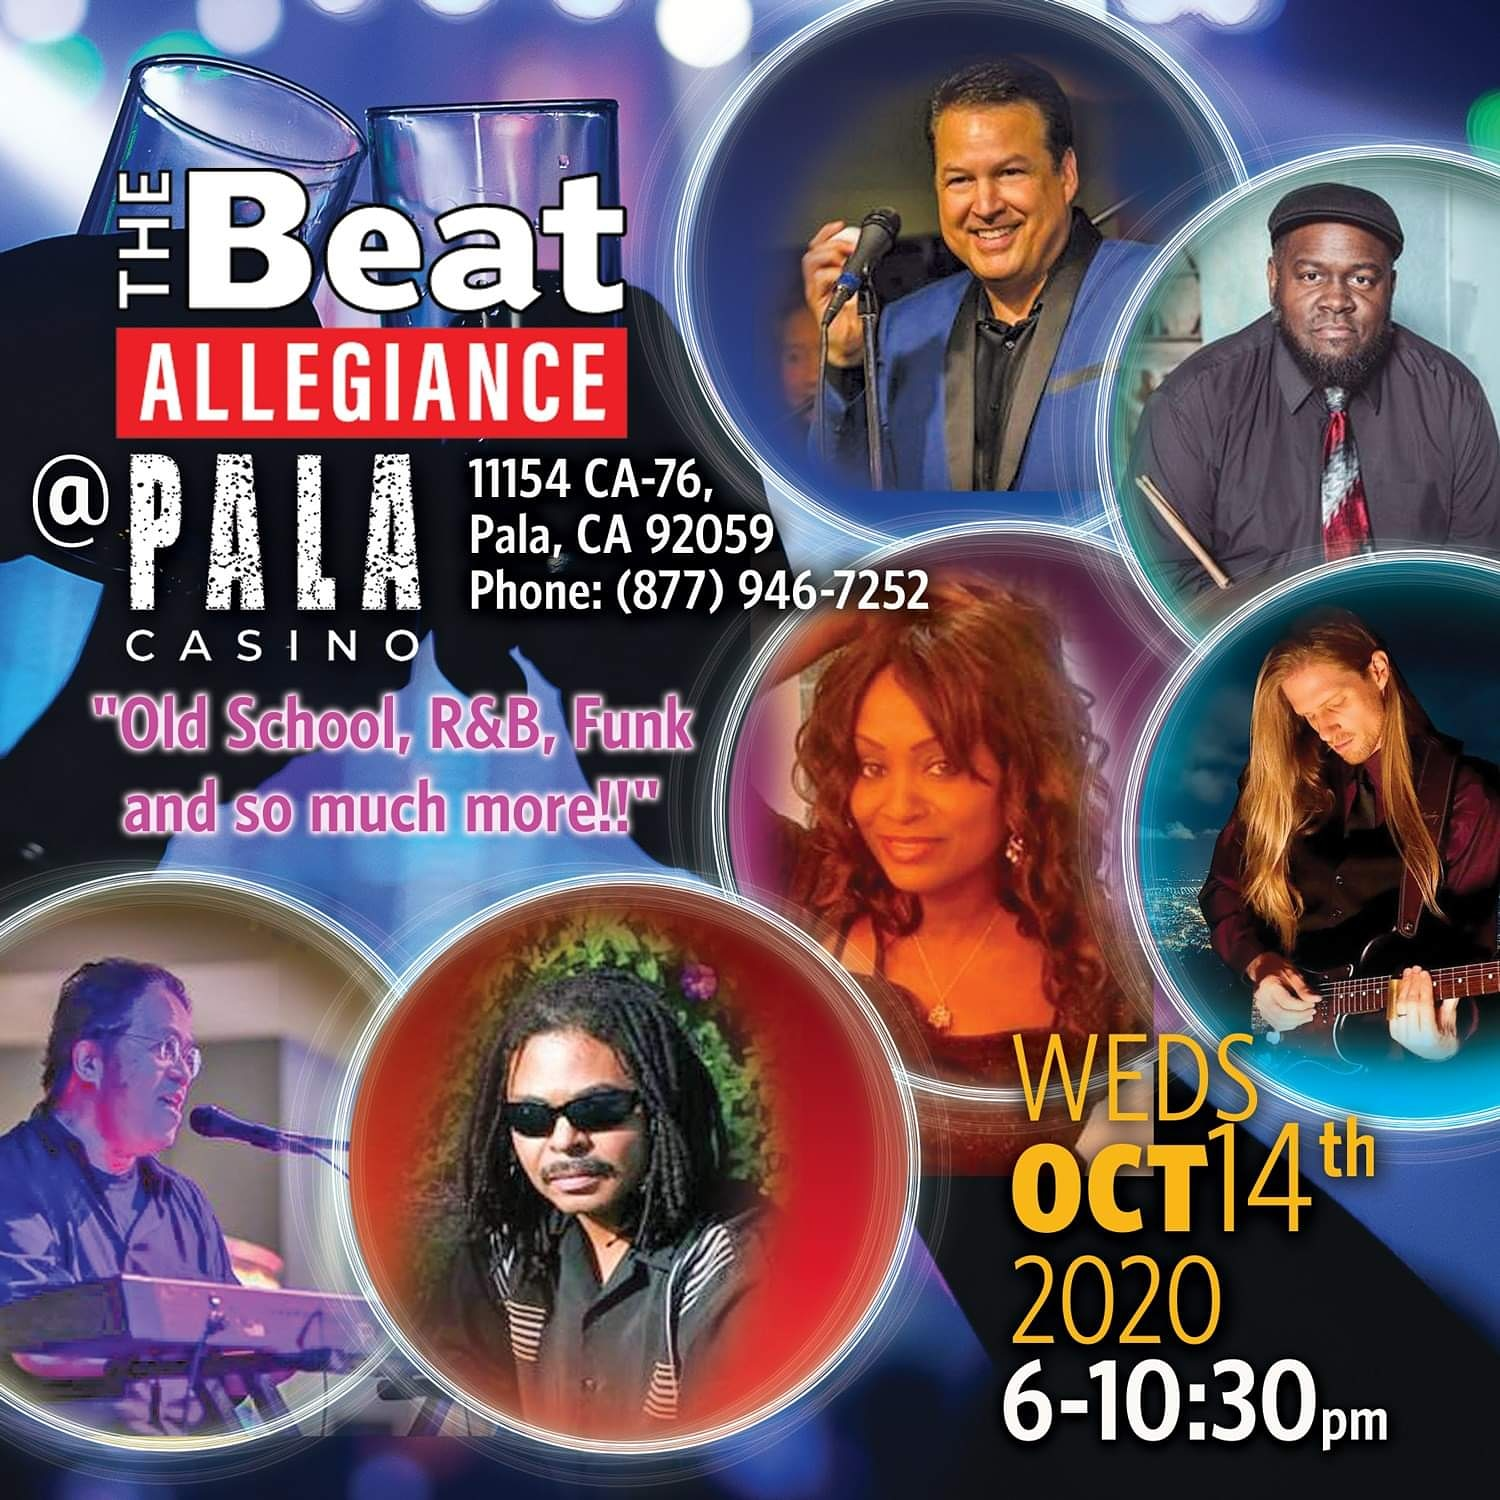 Live music at Pala with The Beat Allegiance